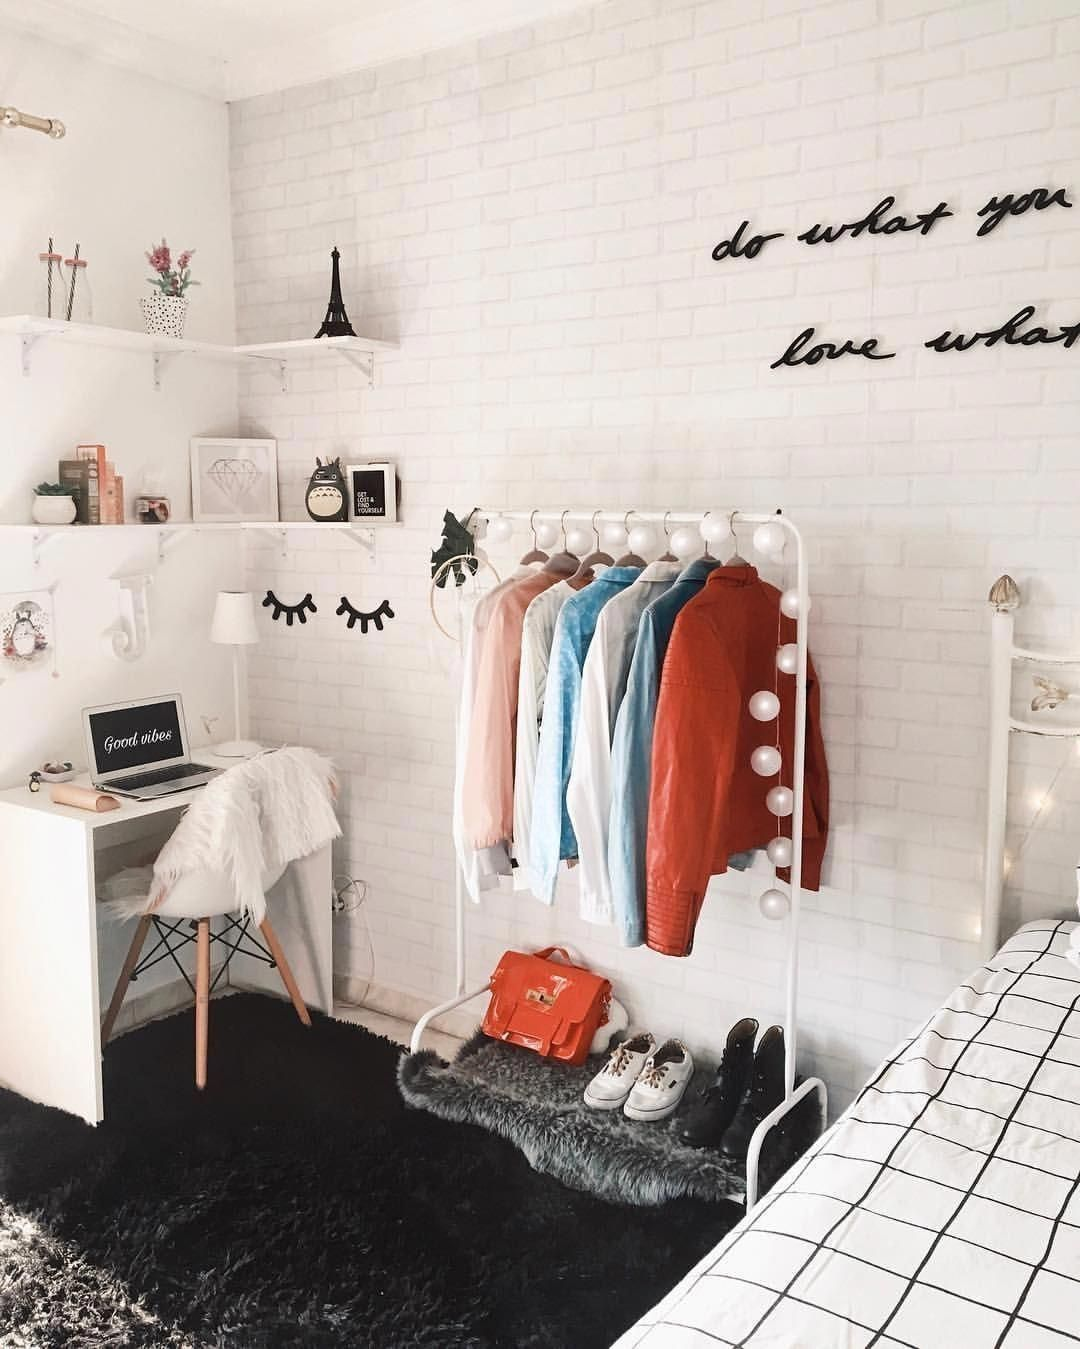 Bedroom Accessories Home Decor Stores Bedroom Decoration Pictures 20190609 Room Inspiration Aesthetic Room Decor Room Decor